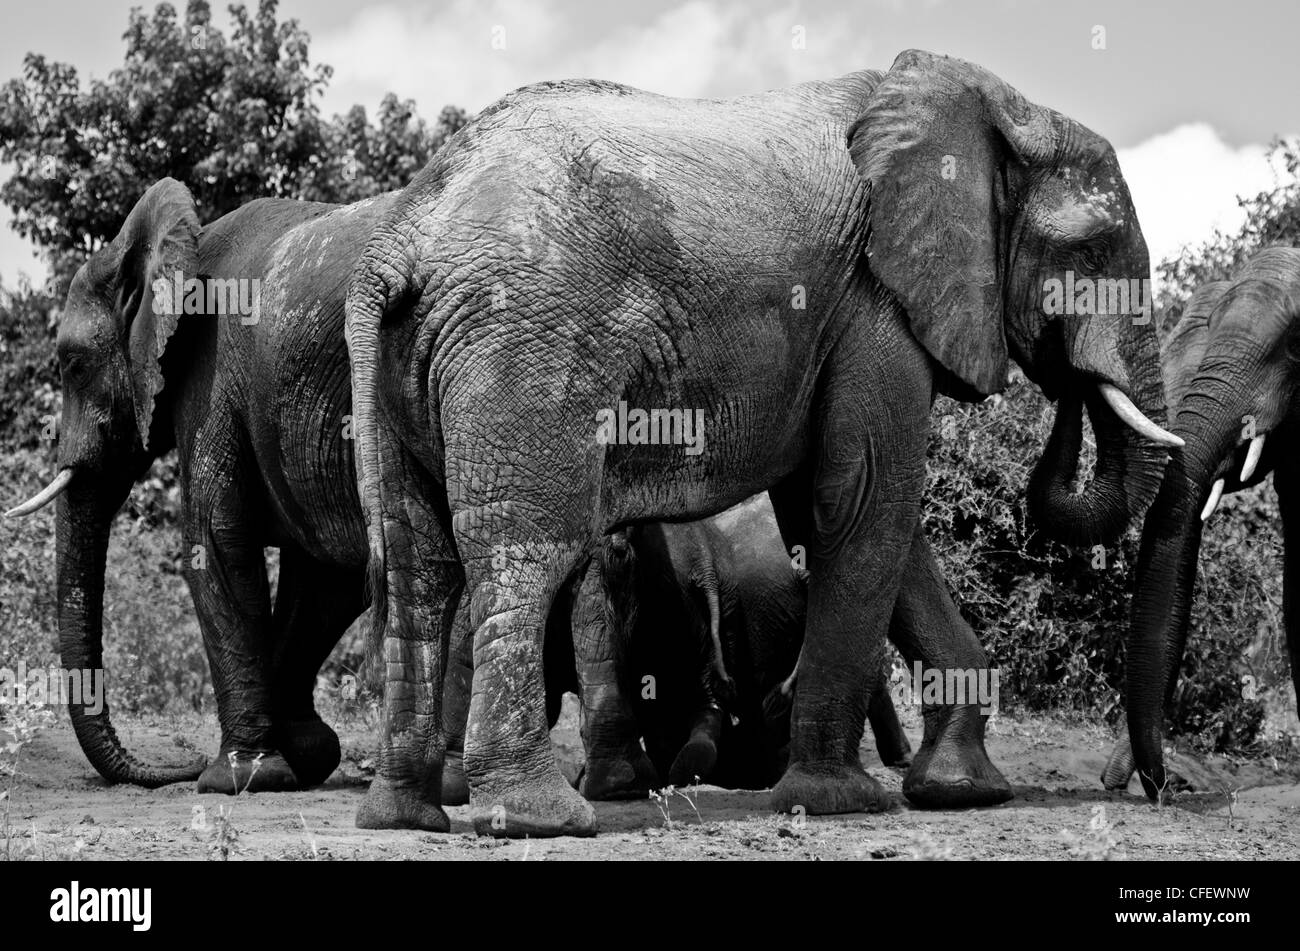 A group of African elephants stand near the water at Chobe National Park in Botswana, Africa Mar. 20, 2011. - Stock Image